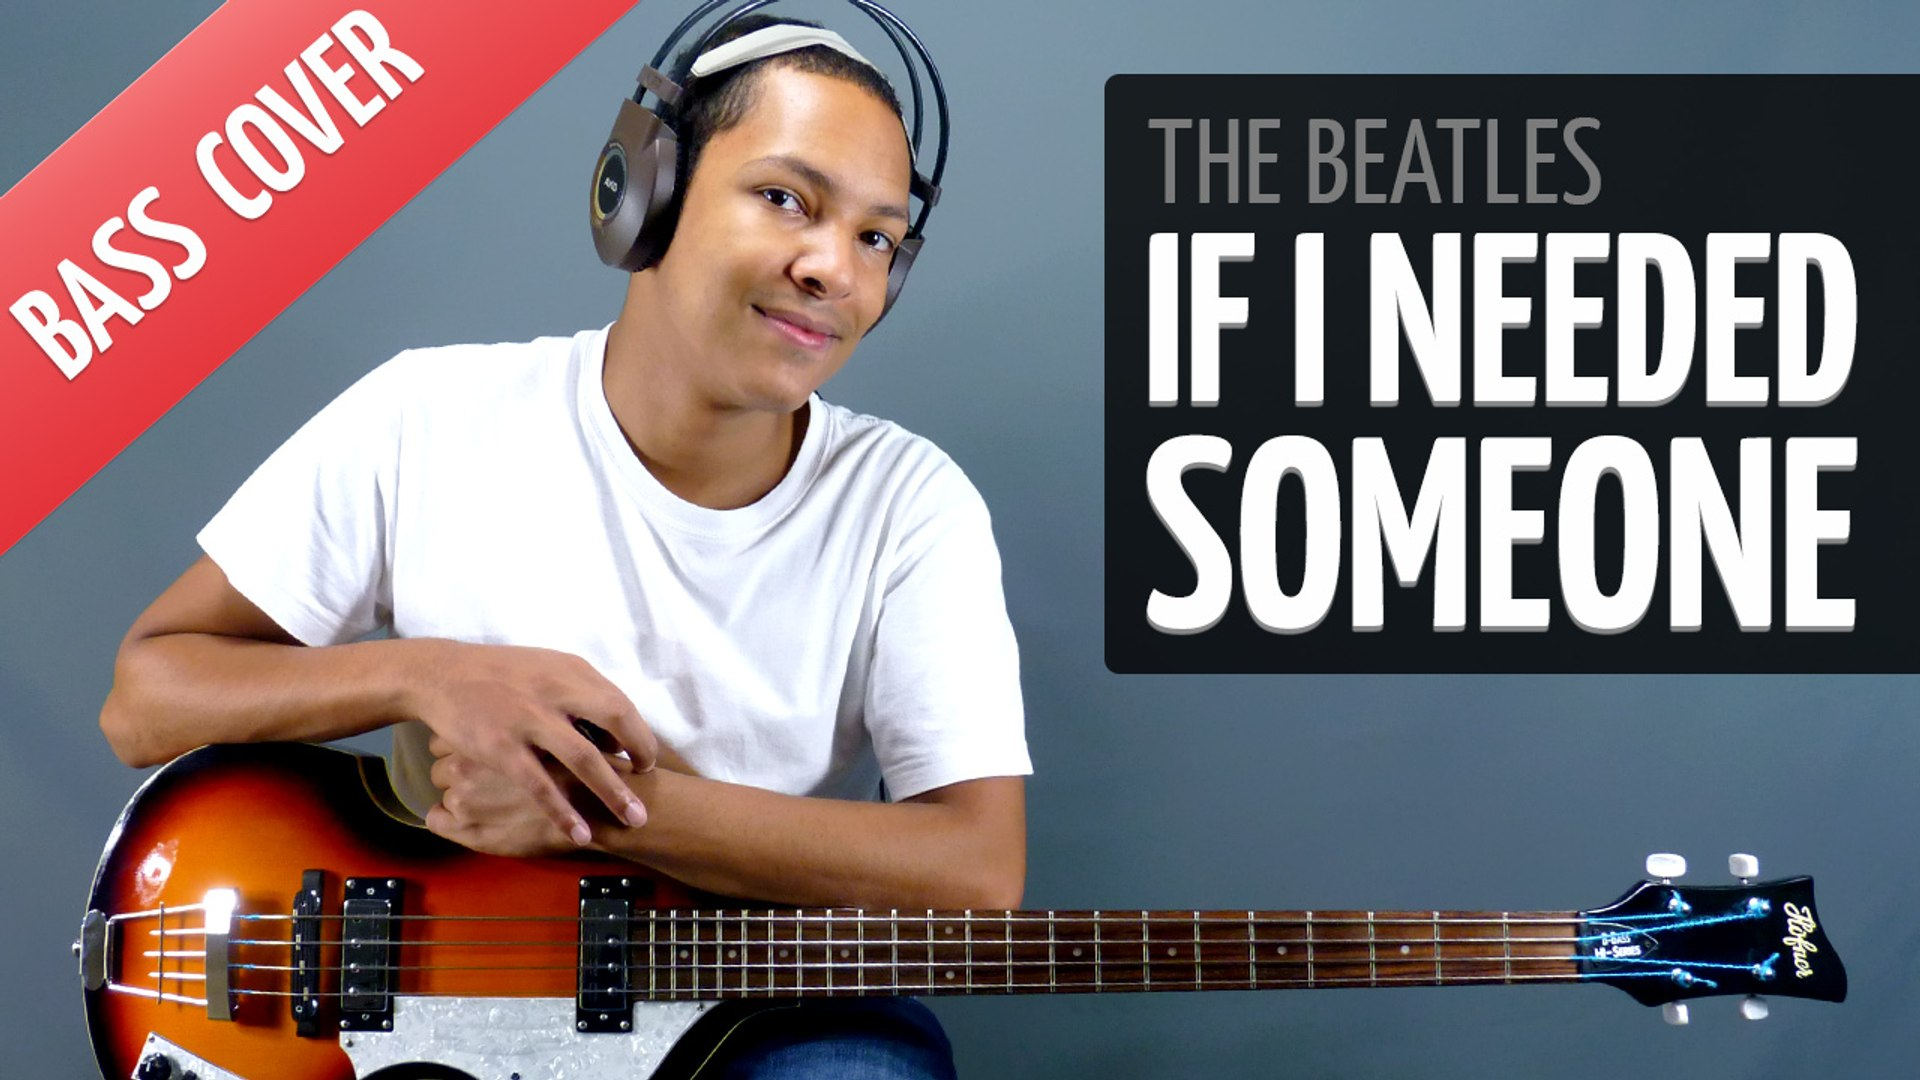 If I Needed Someone (The Beatles - Bass Cover) - video